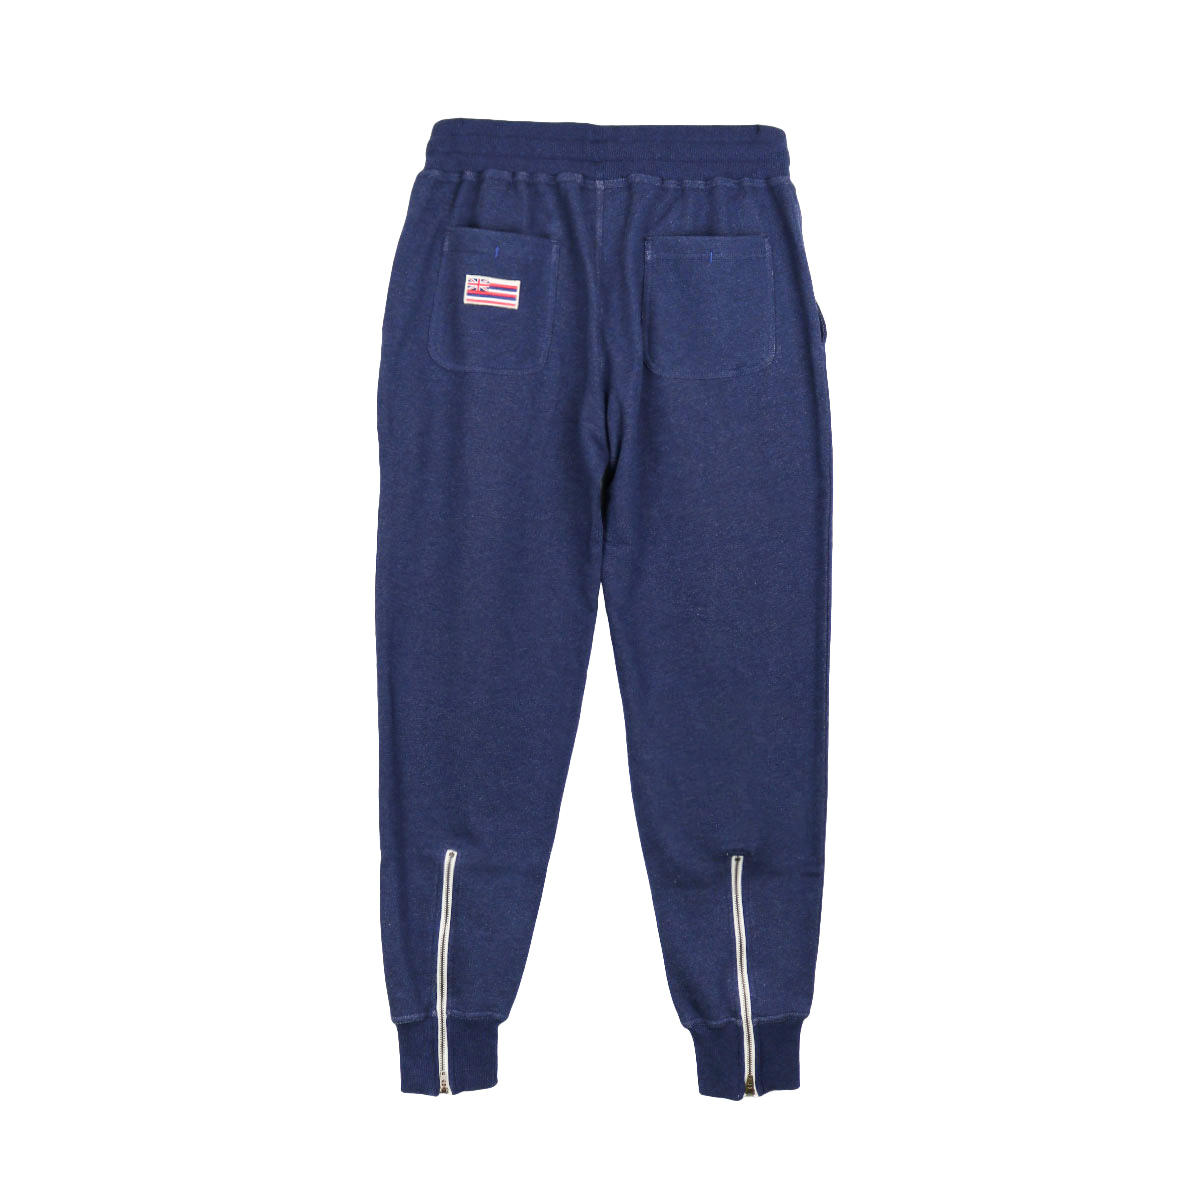 BASIC LOGO PANTS